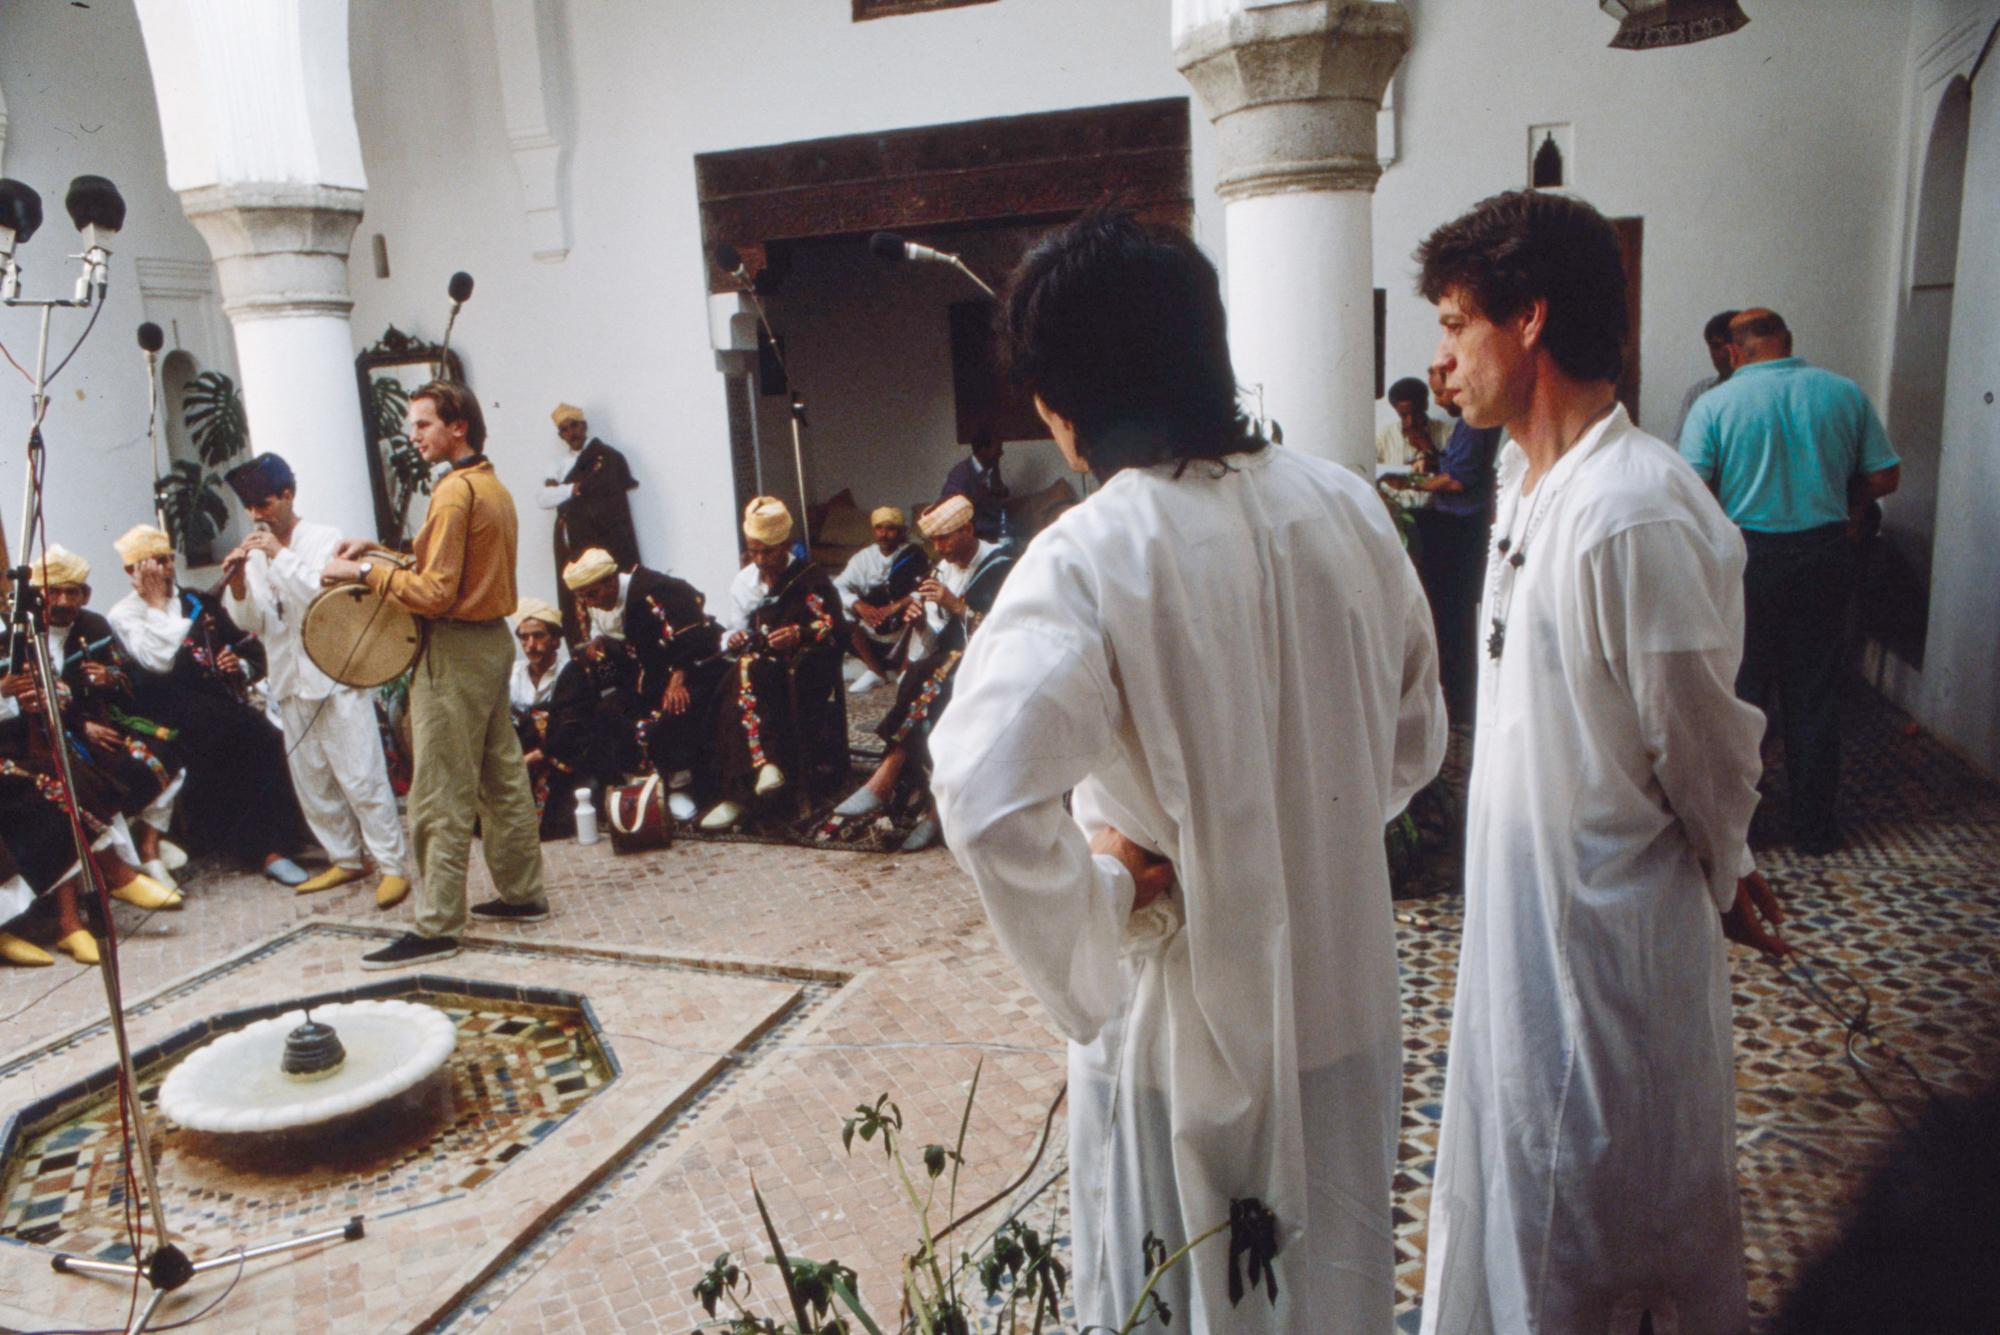 Ronnie and Mick look on at the Jajouka musicians during the recording of Continental Drift